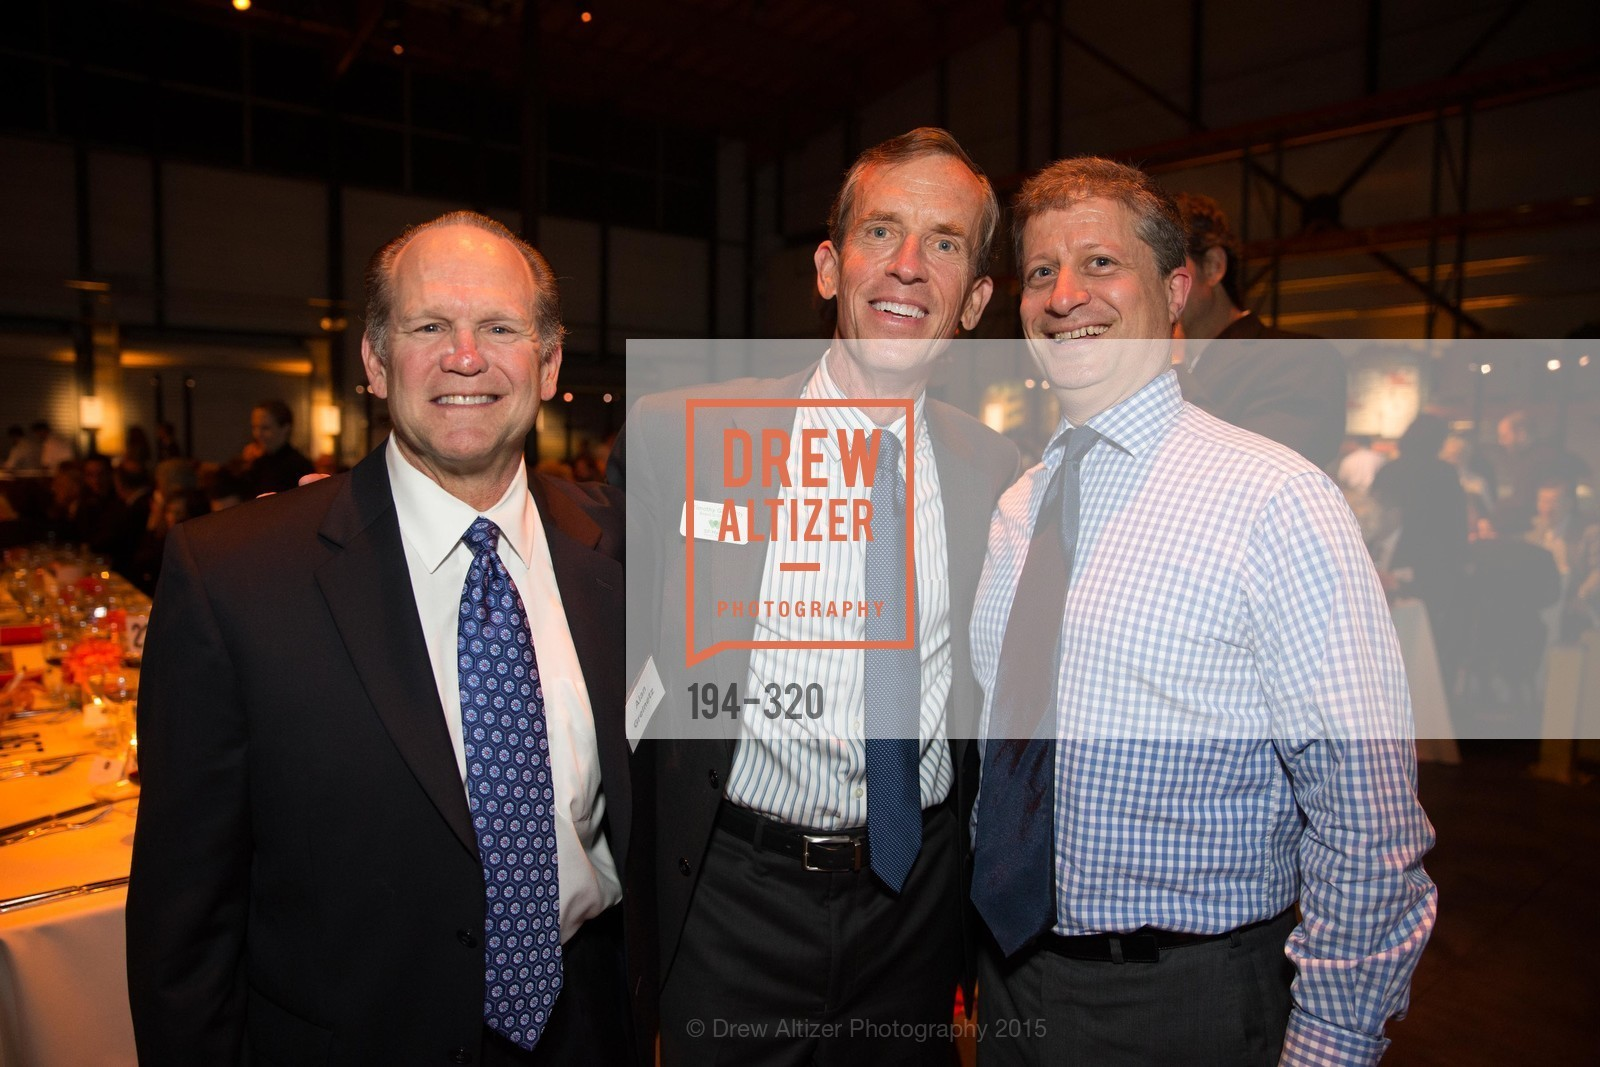 Alan Greinetz, Tim Geraghty, Mark Lehmann, SF - Marin Food Bank Presents ONE BIG TABLE, SF- Marin Food Bank. 900 Pennsylvania Ave, September 26th, 2015,Drew Altizer, Drew Altizer Photography, full-service agency, private events, San Francisco photographer, photographer california